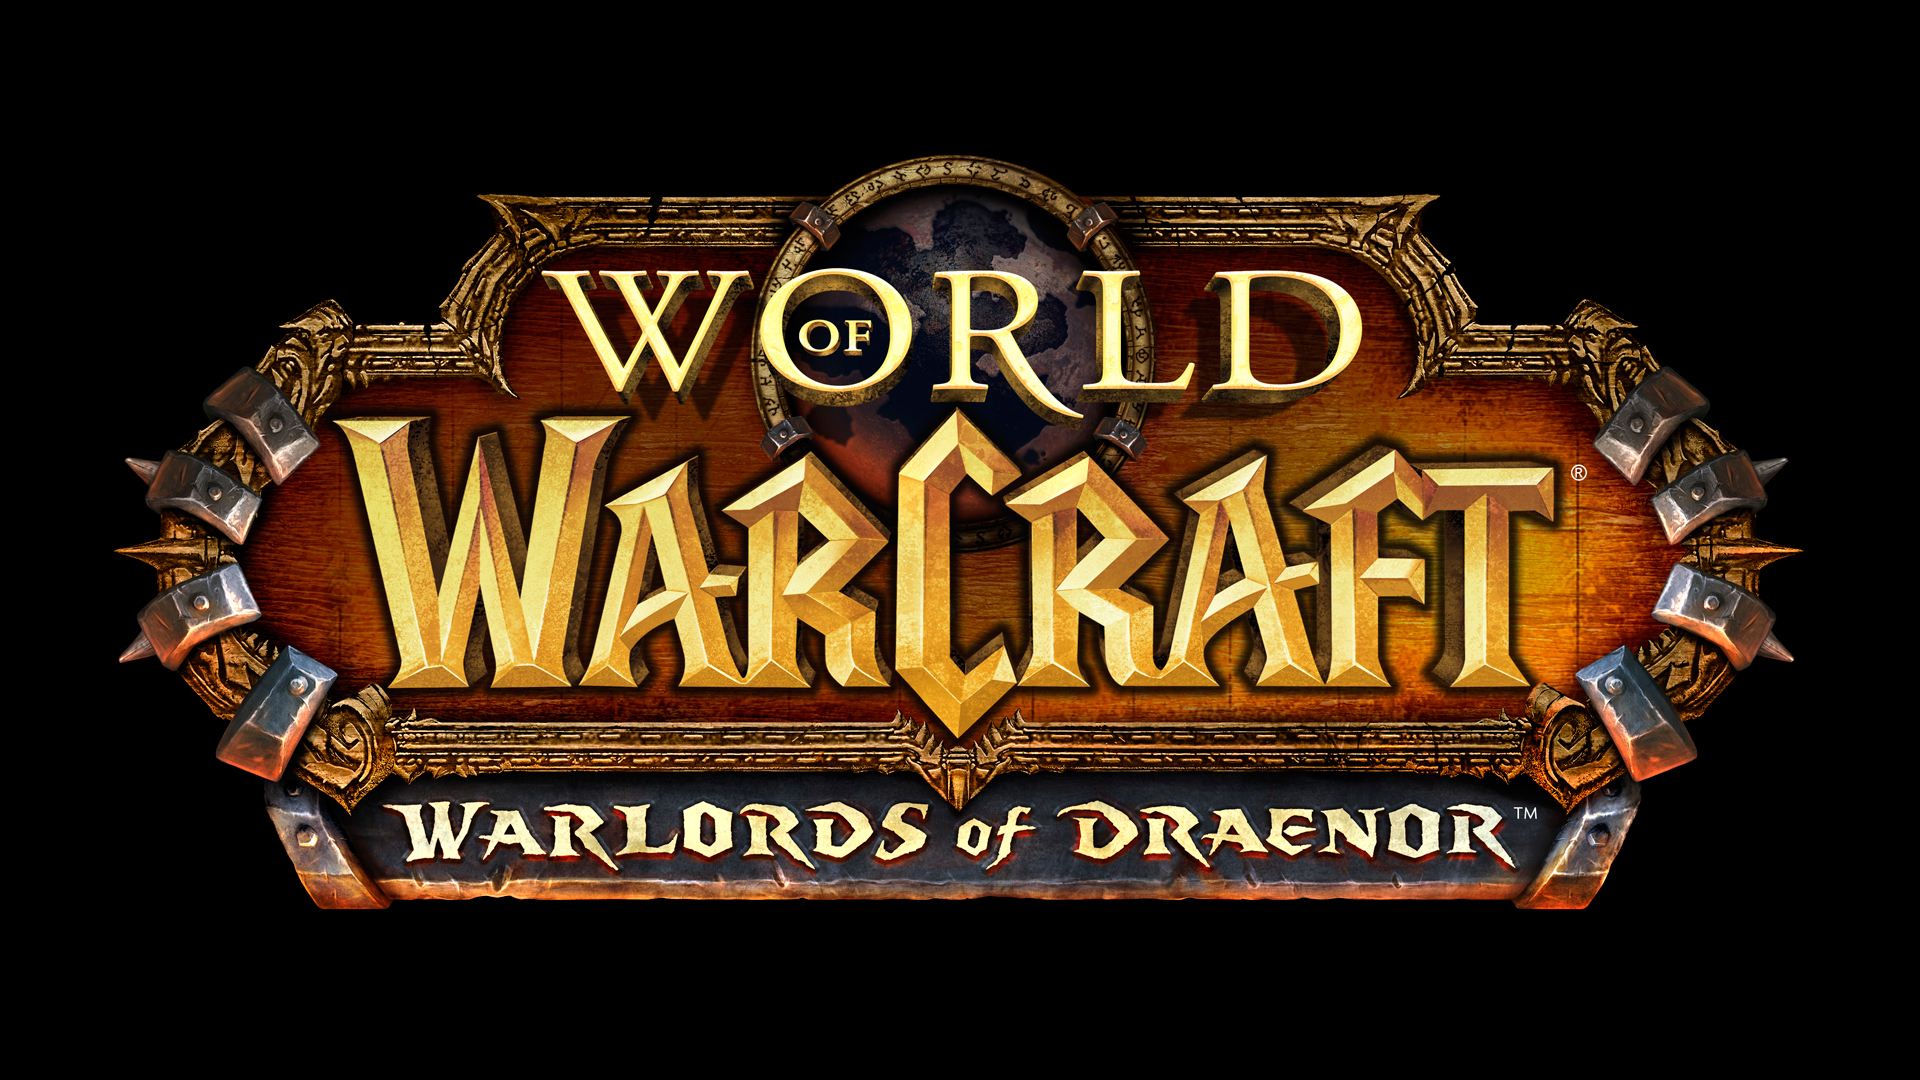 World of warcraft warlords of draenor - дата